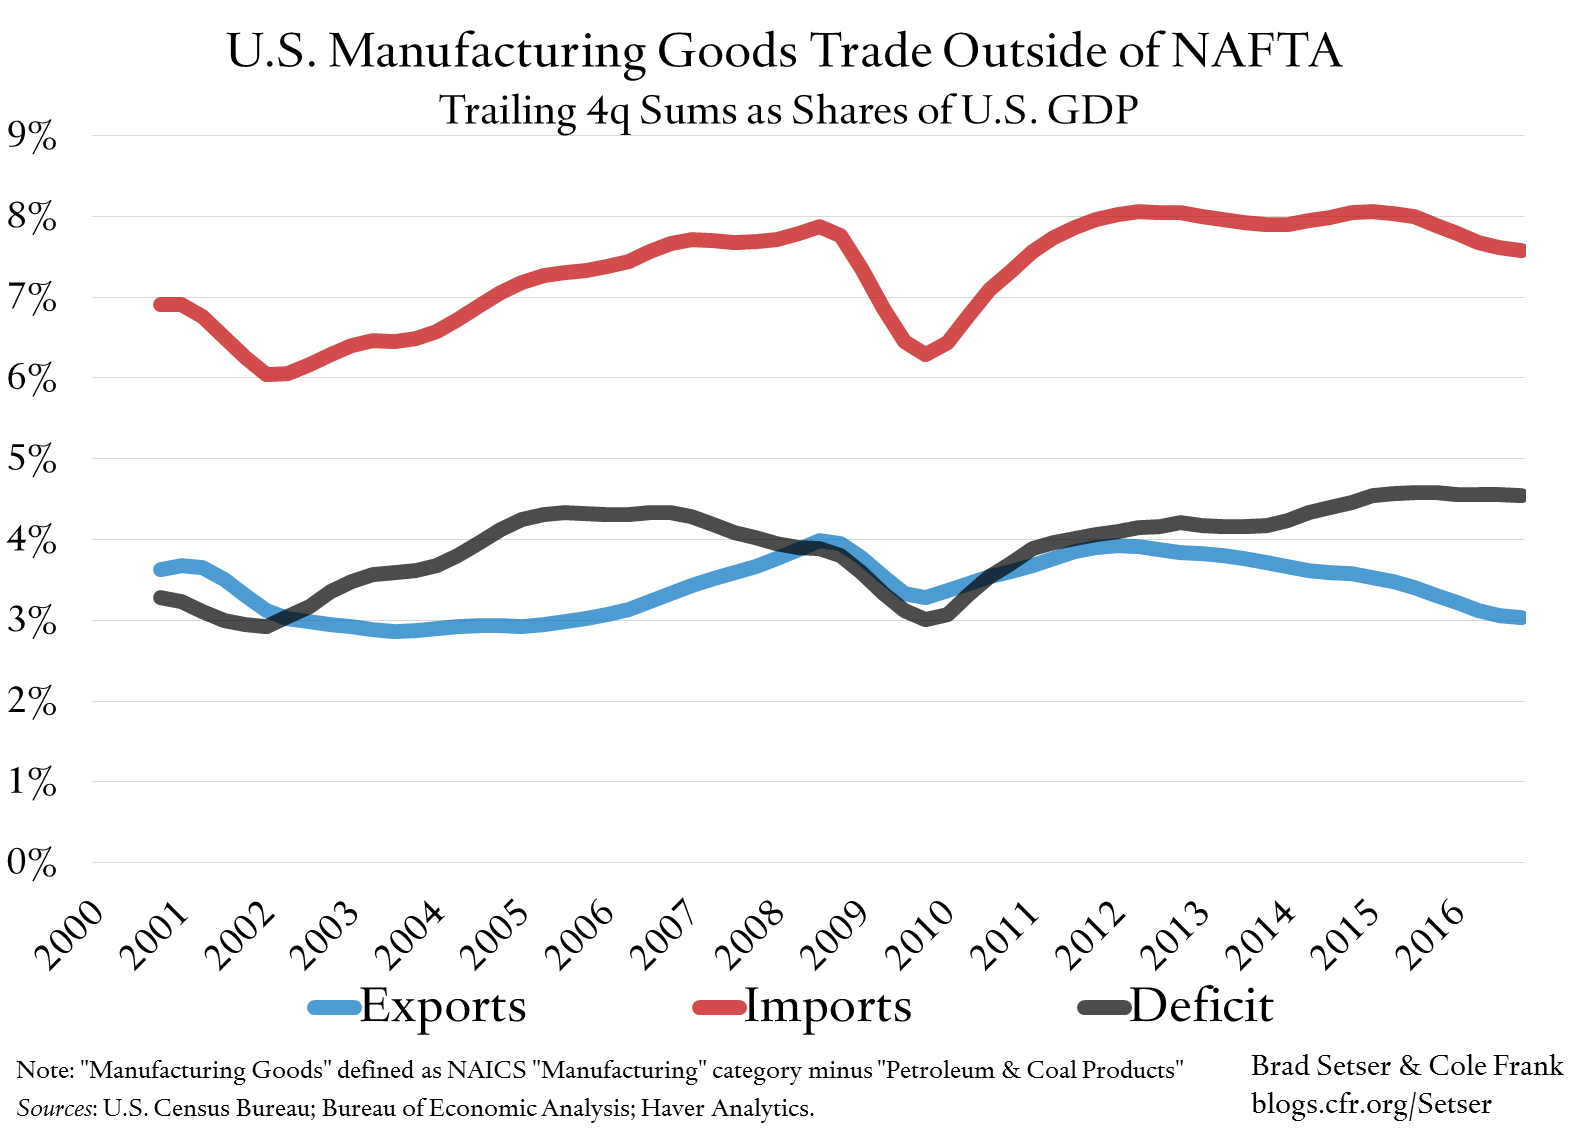 U.S. Manufacturing Exports—Excluding NAFTA—Are Surprisingly Small